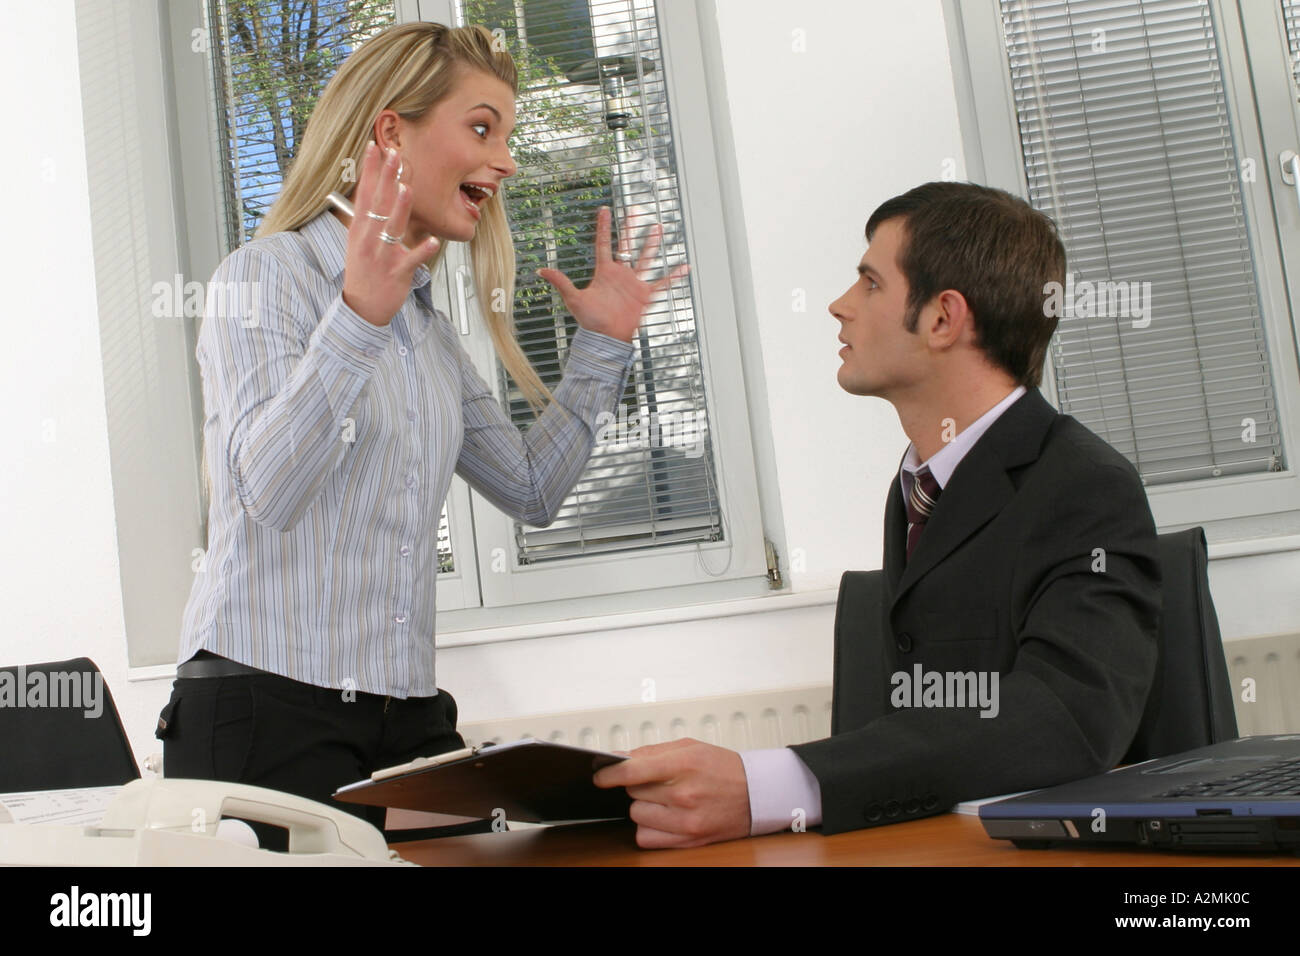 Two employees in office Zwei Angestellte im Buero Stock Photo